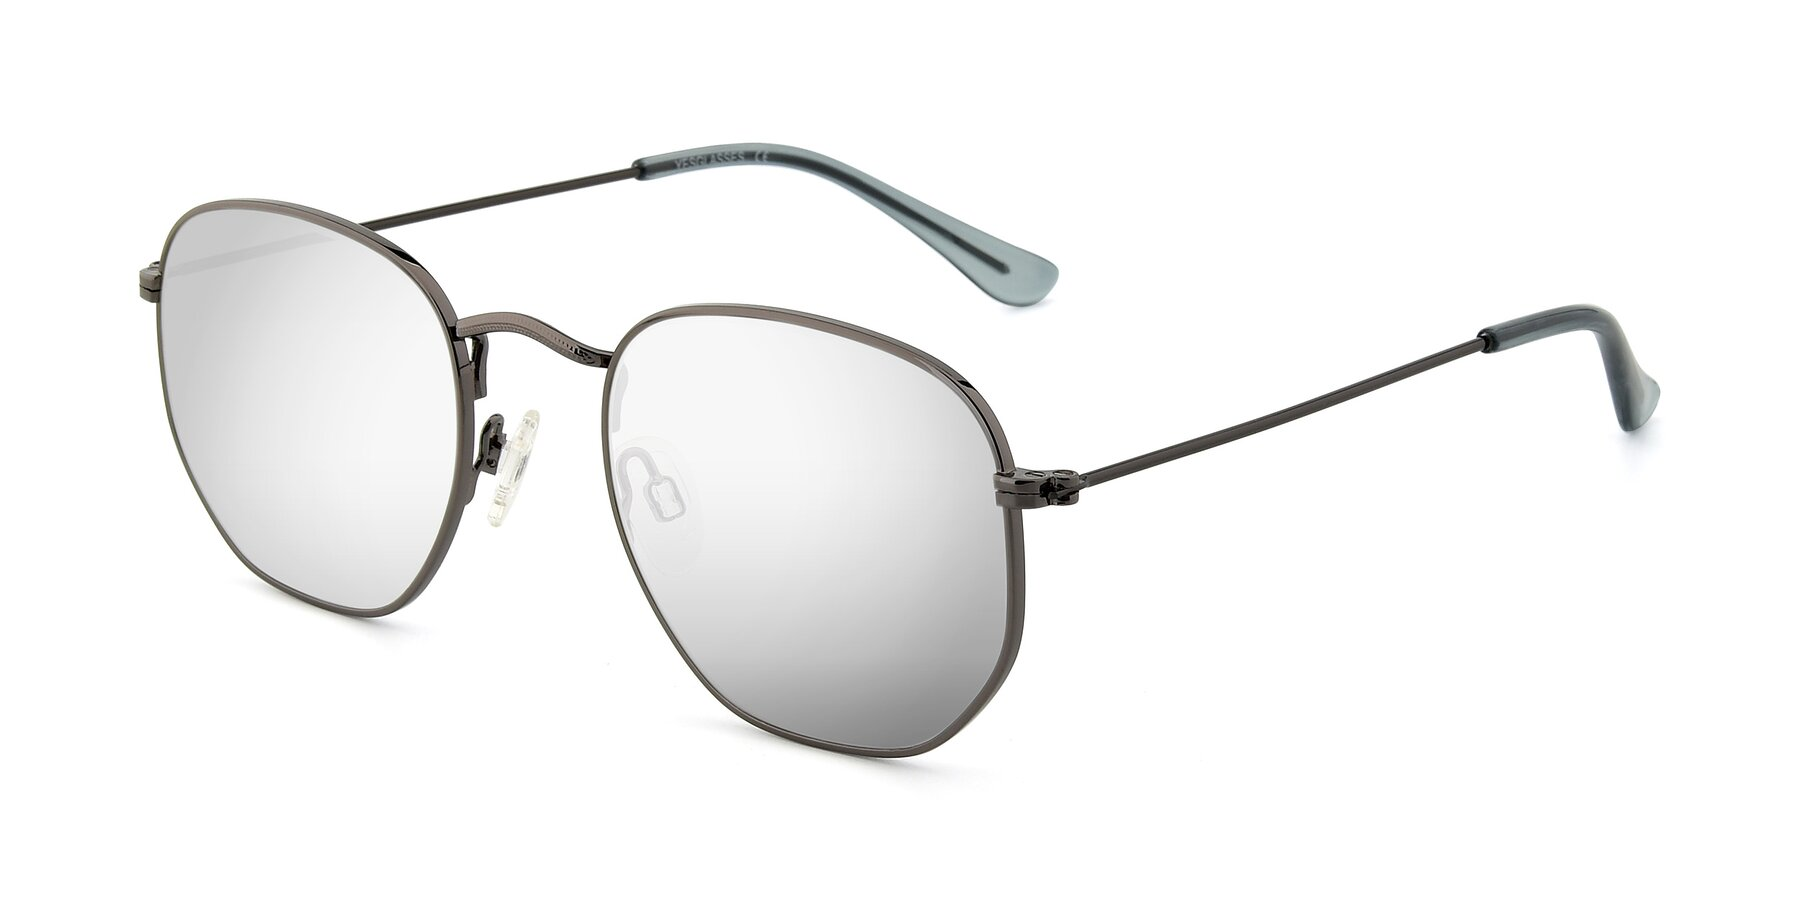 Angle of SSR1944 in Grey with Silver Mirrored Lenses